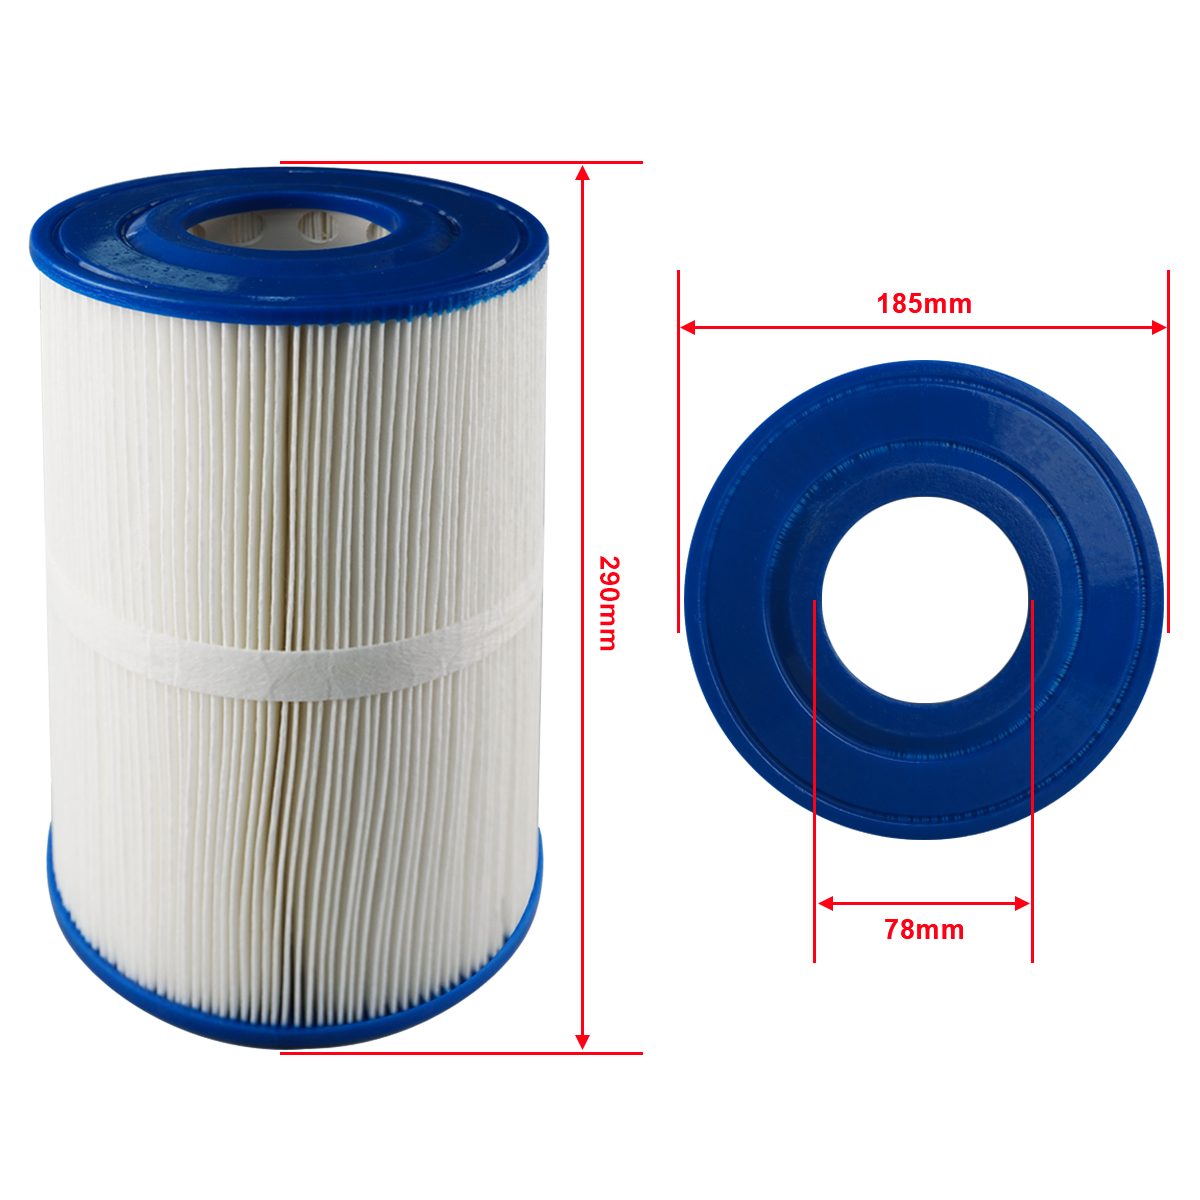 out spa tub cartridge filter for Monalisa Jazzi spa Hayvabo swimspa hot tub filter 290 x